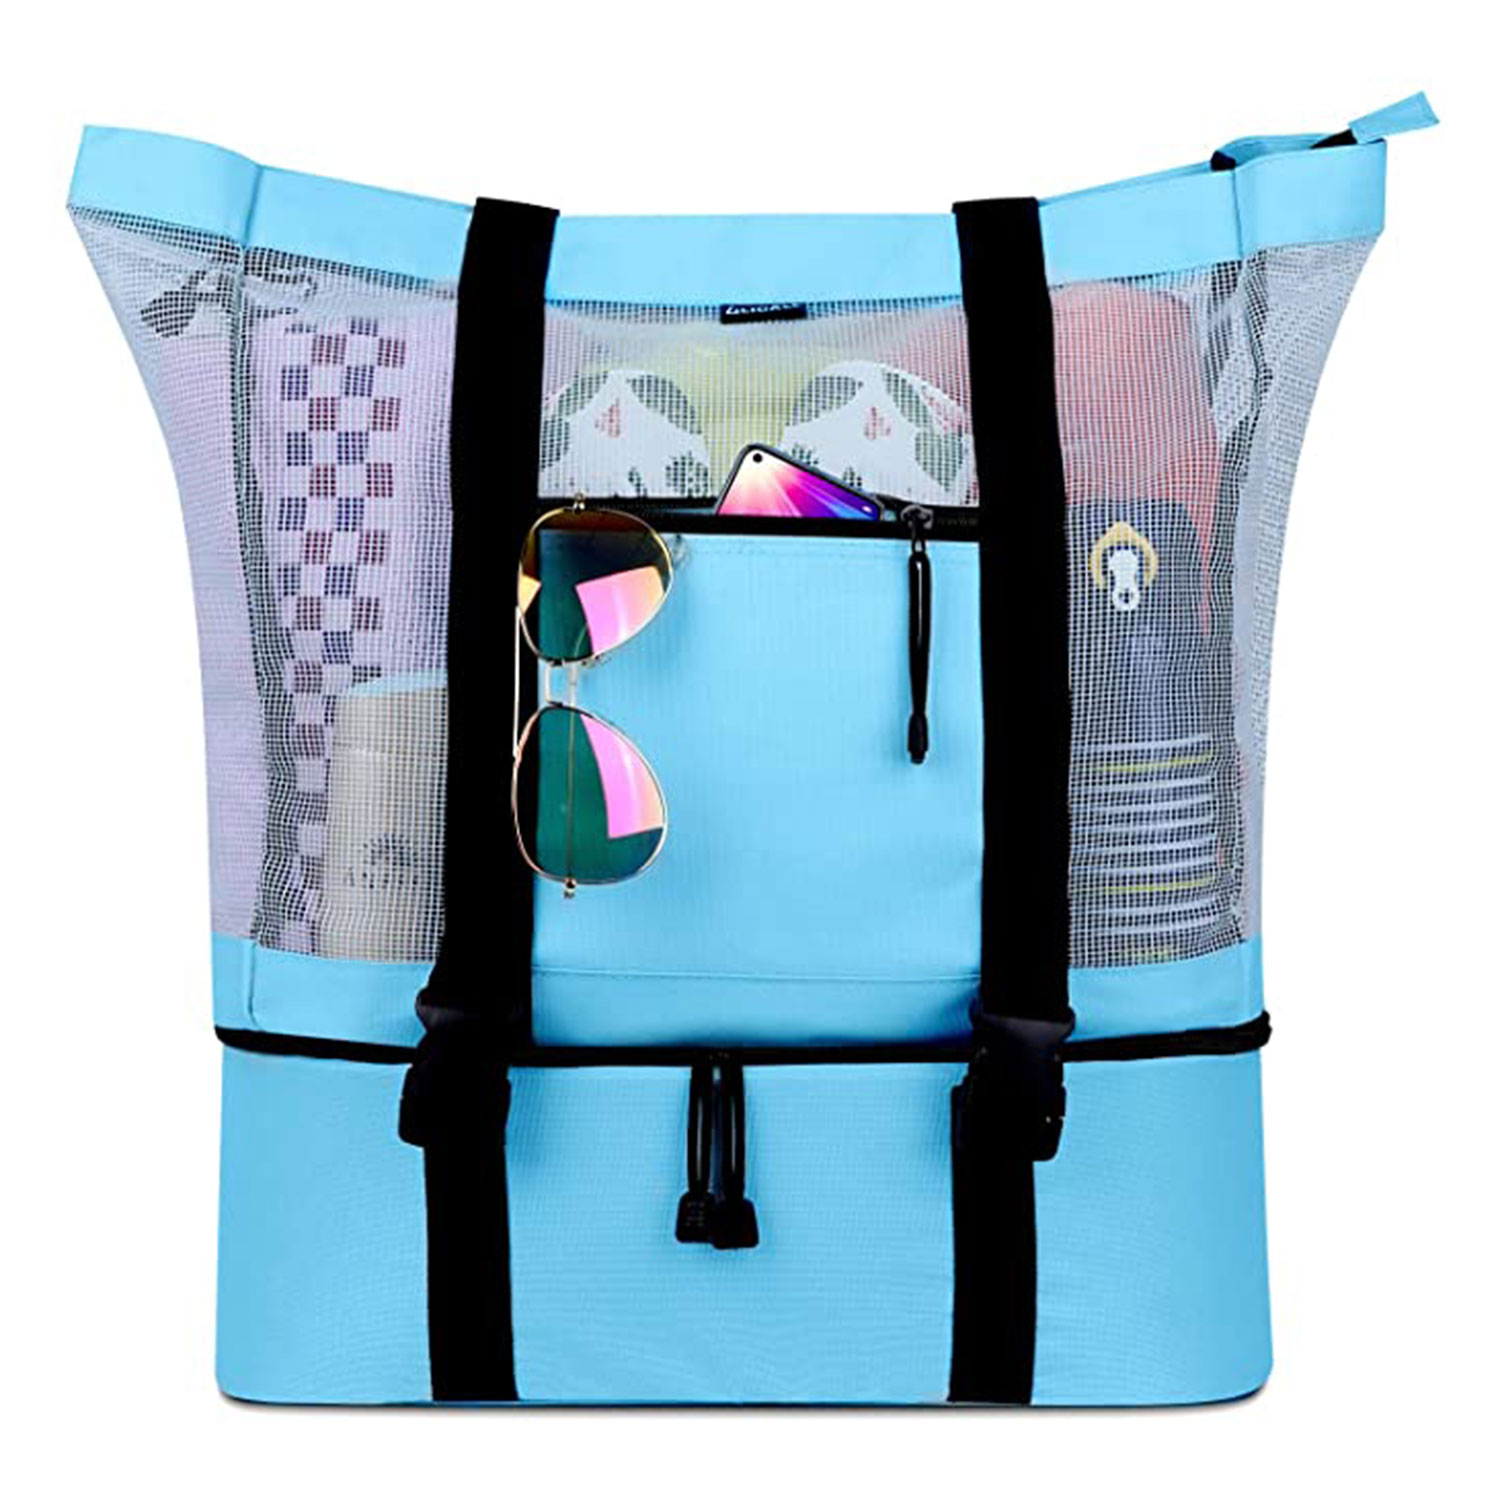 FITFORT Mesh Beach Tote Bag with Detachable Beach Cooler